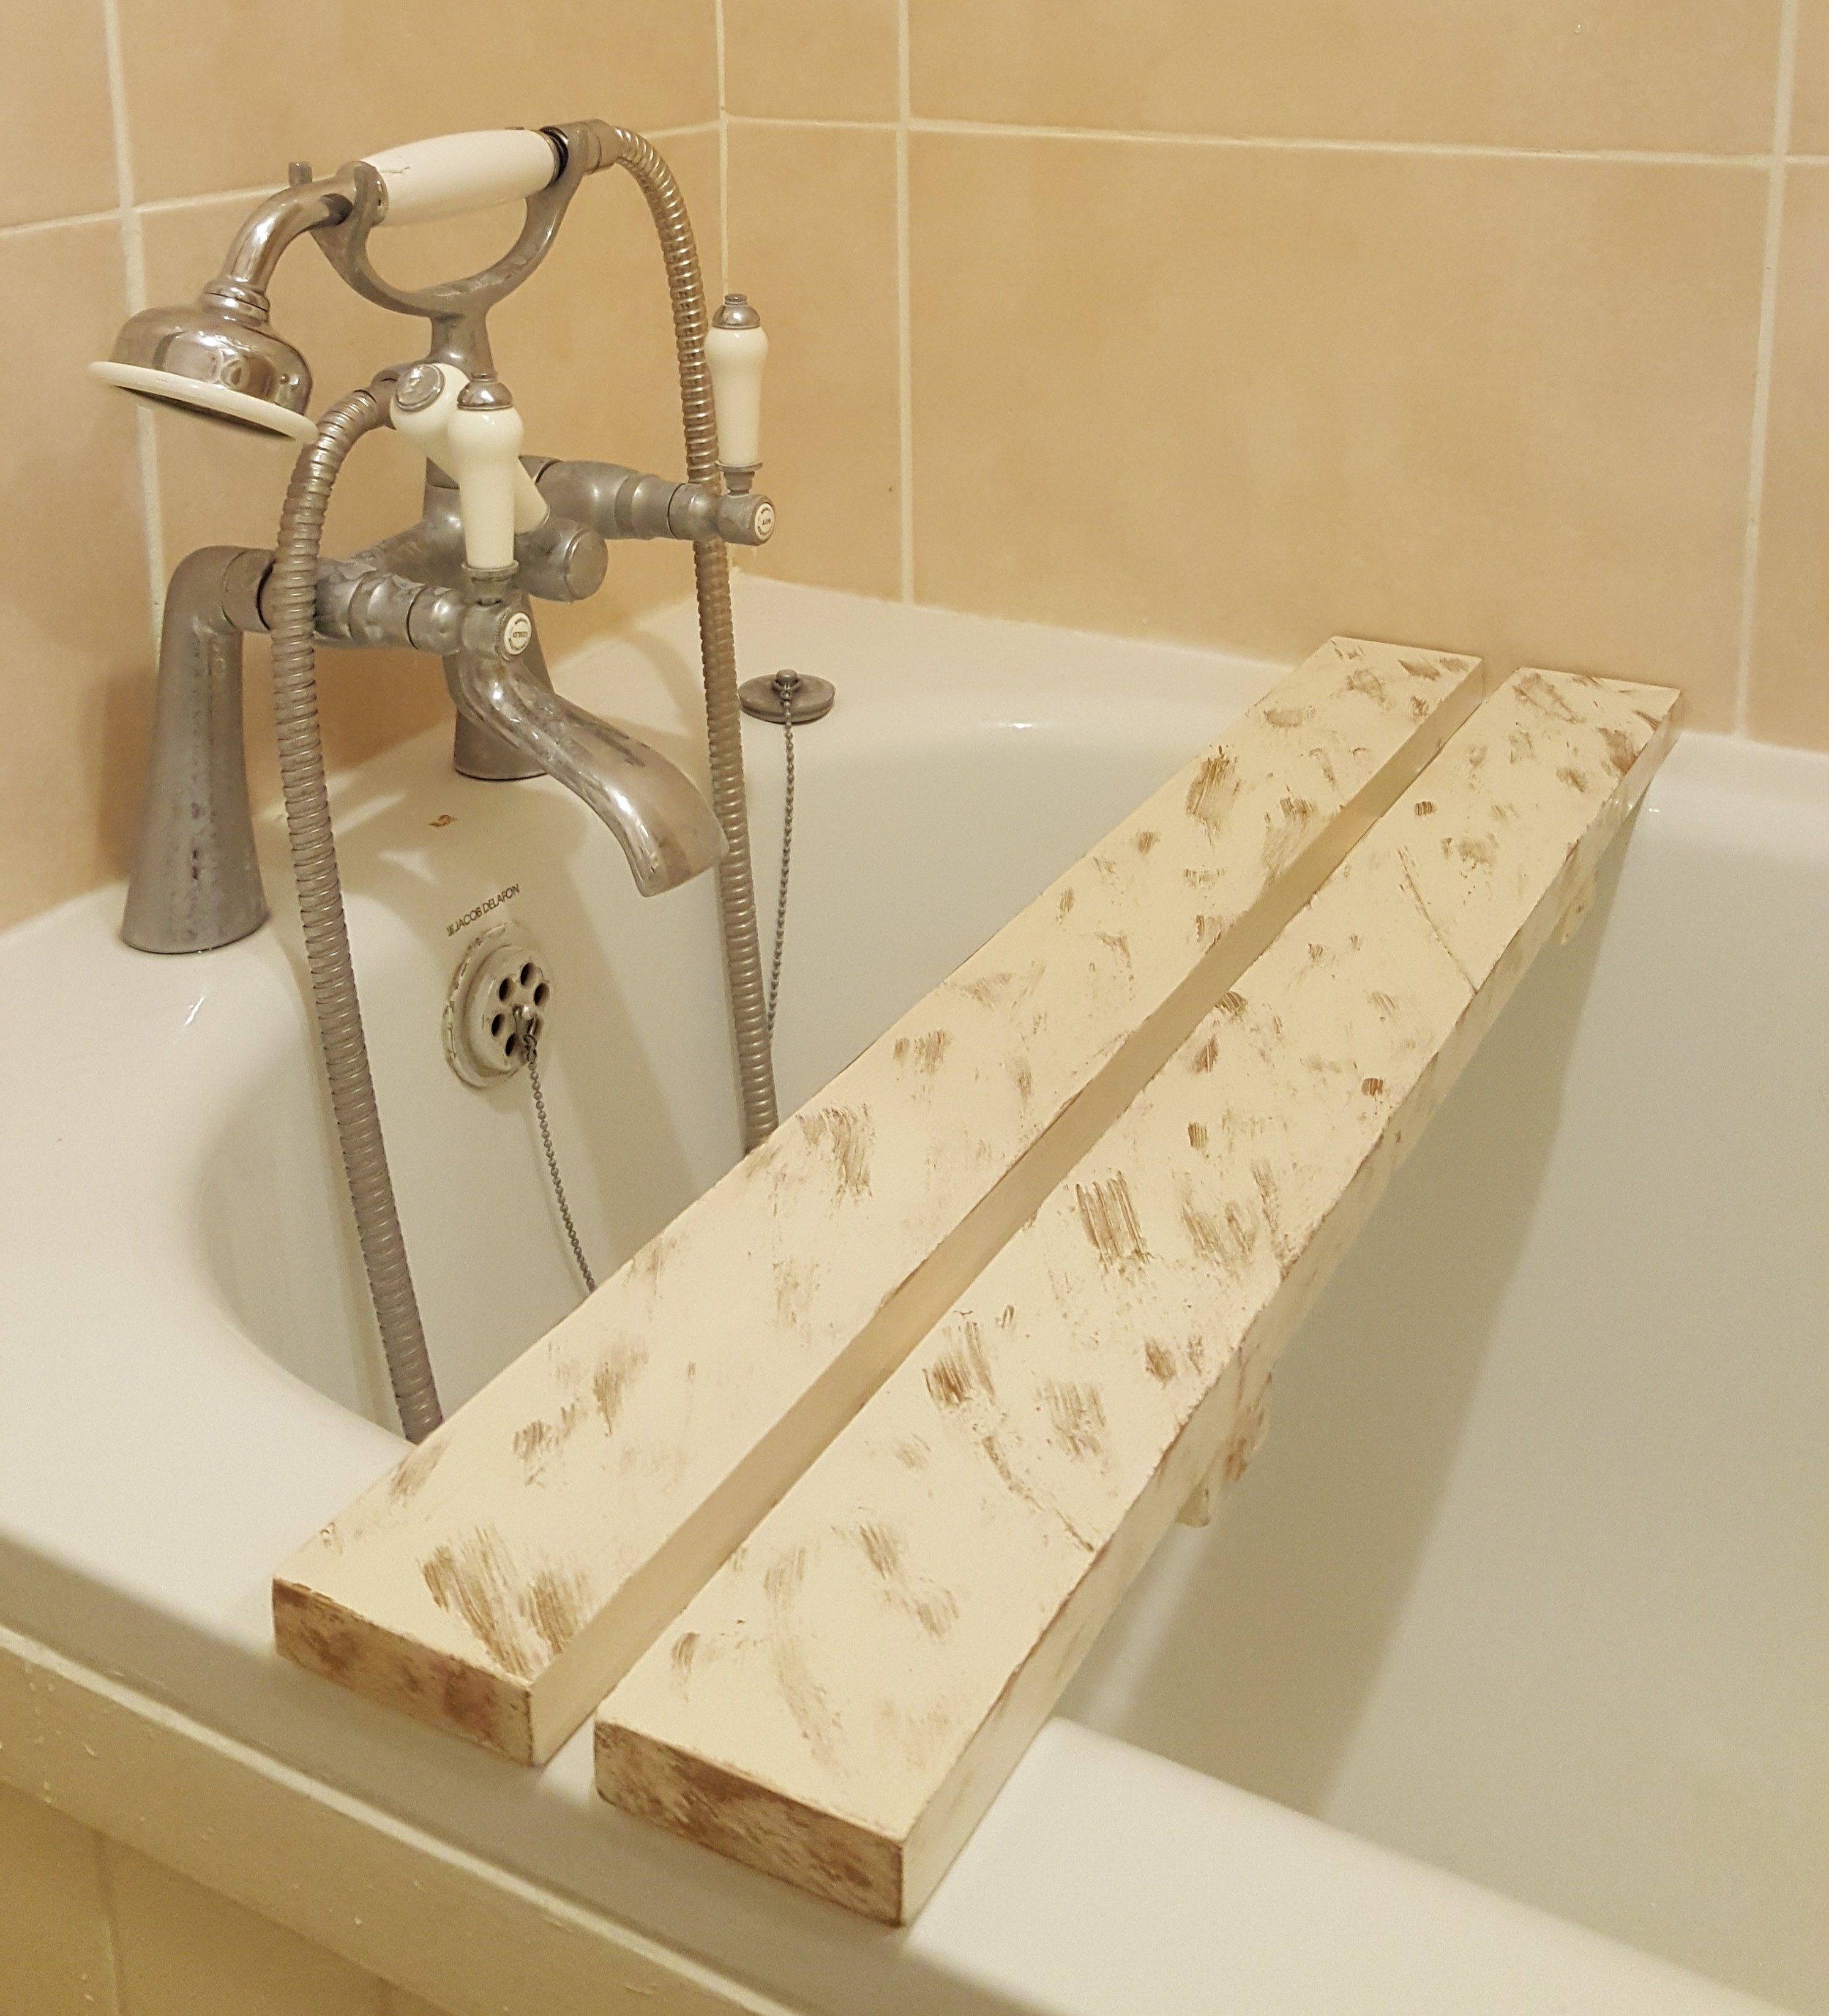 Borewood Solid Pine Wood Distressed BathTub Rack Bridge Bath Caddy ...